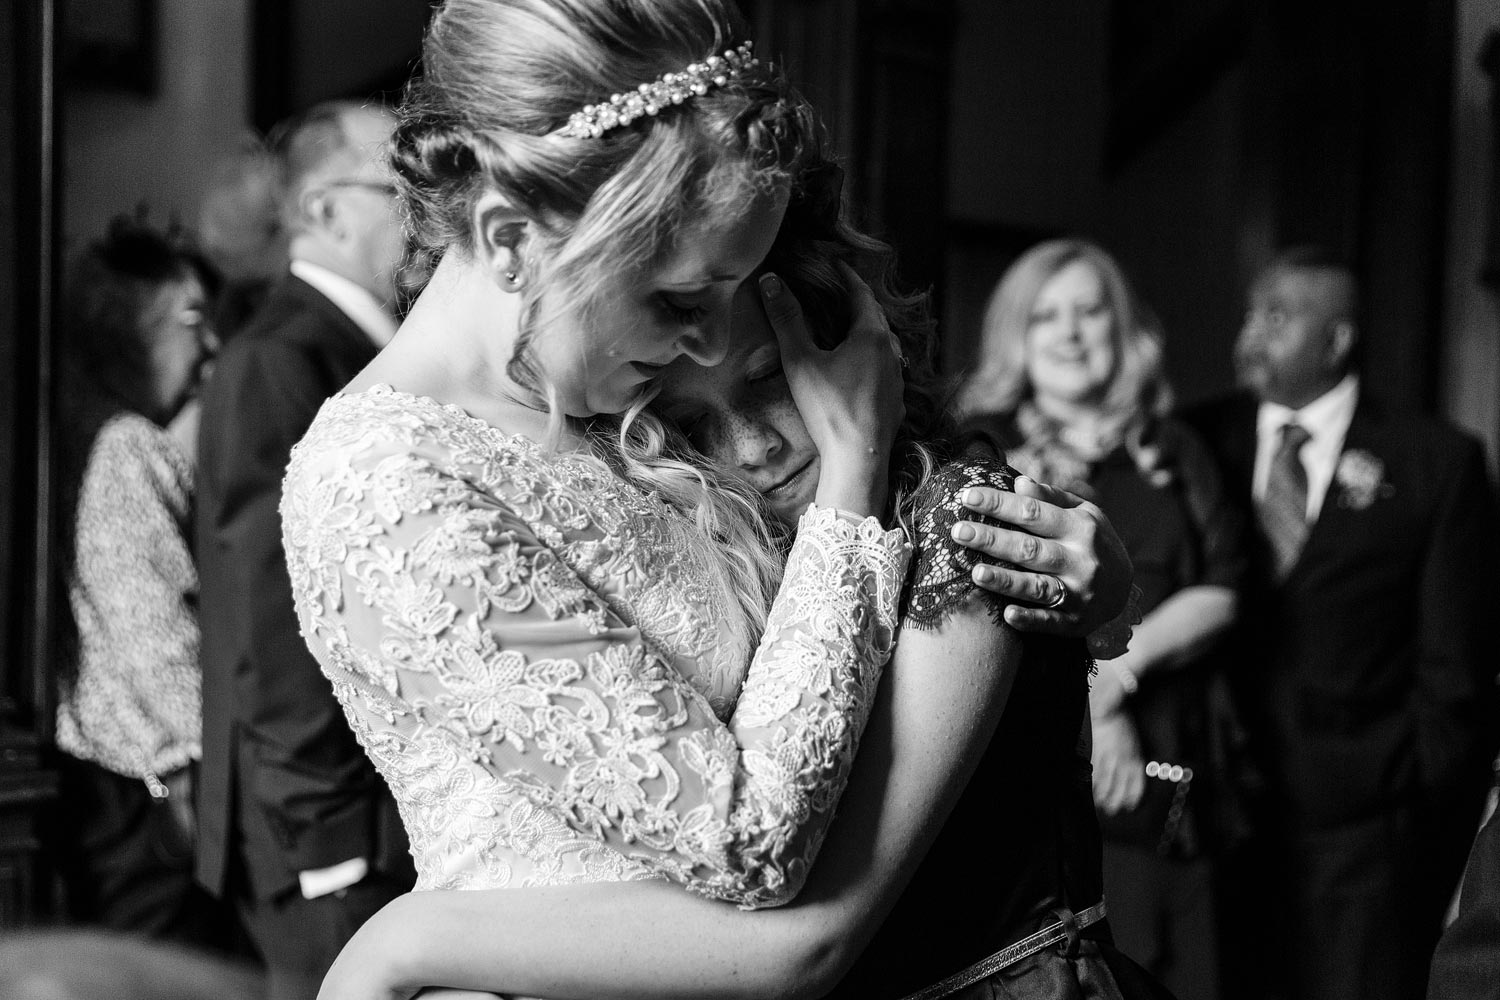 The bride comforts her niece at her wedding at York House in Twickenham